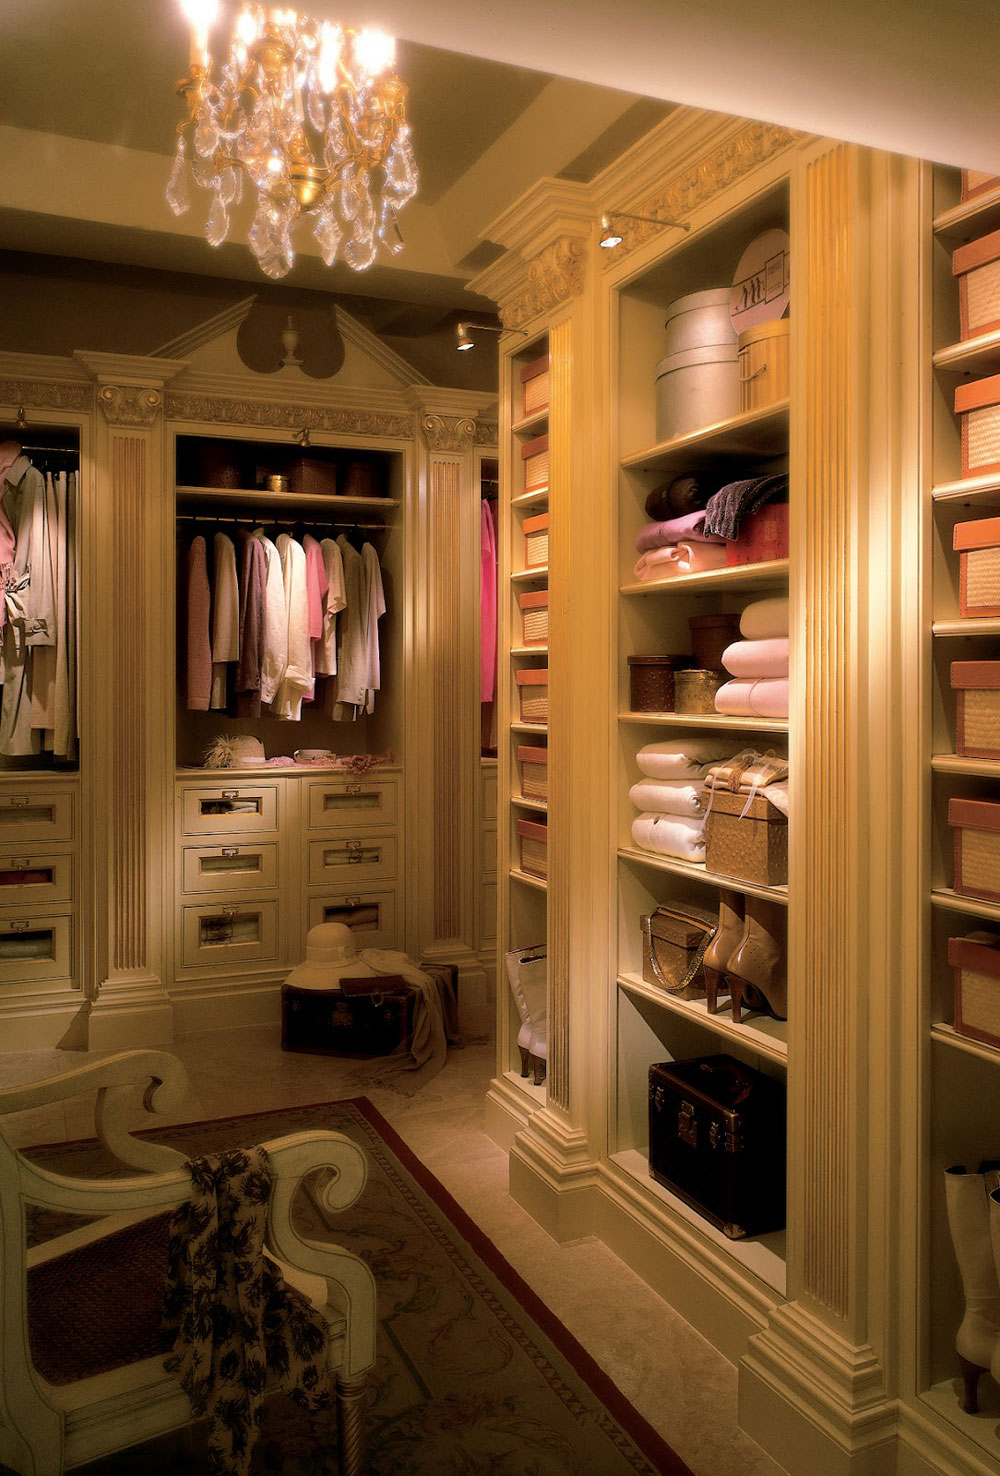 Bedroom Closet Design Ideas To Organize Your Style 9 Bedroom Closet Design Ideas To Organize Your Style